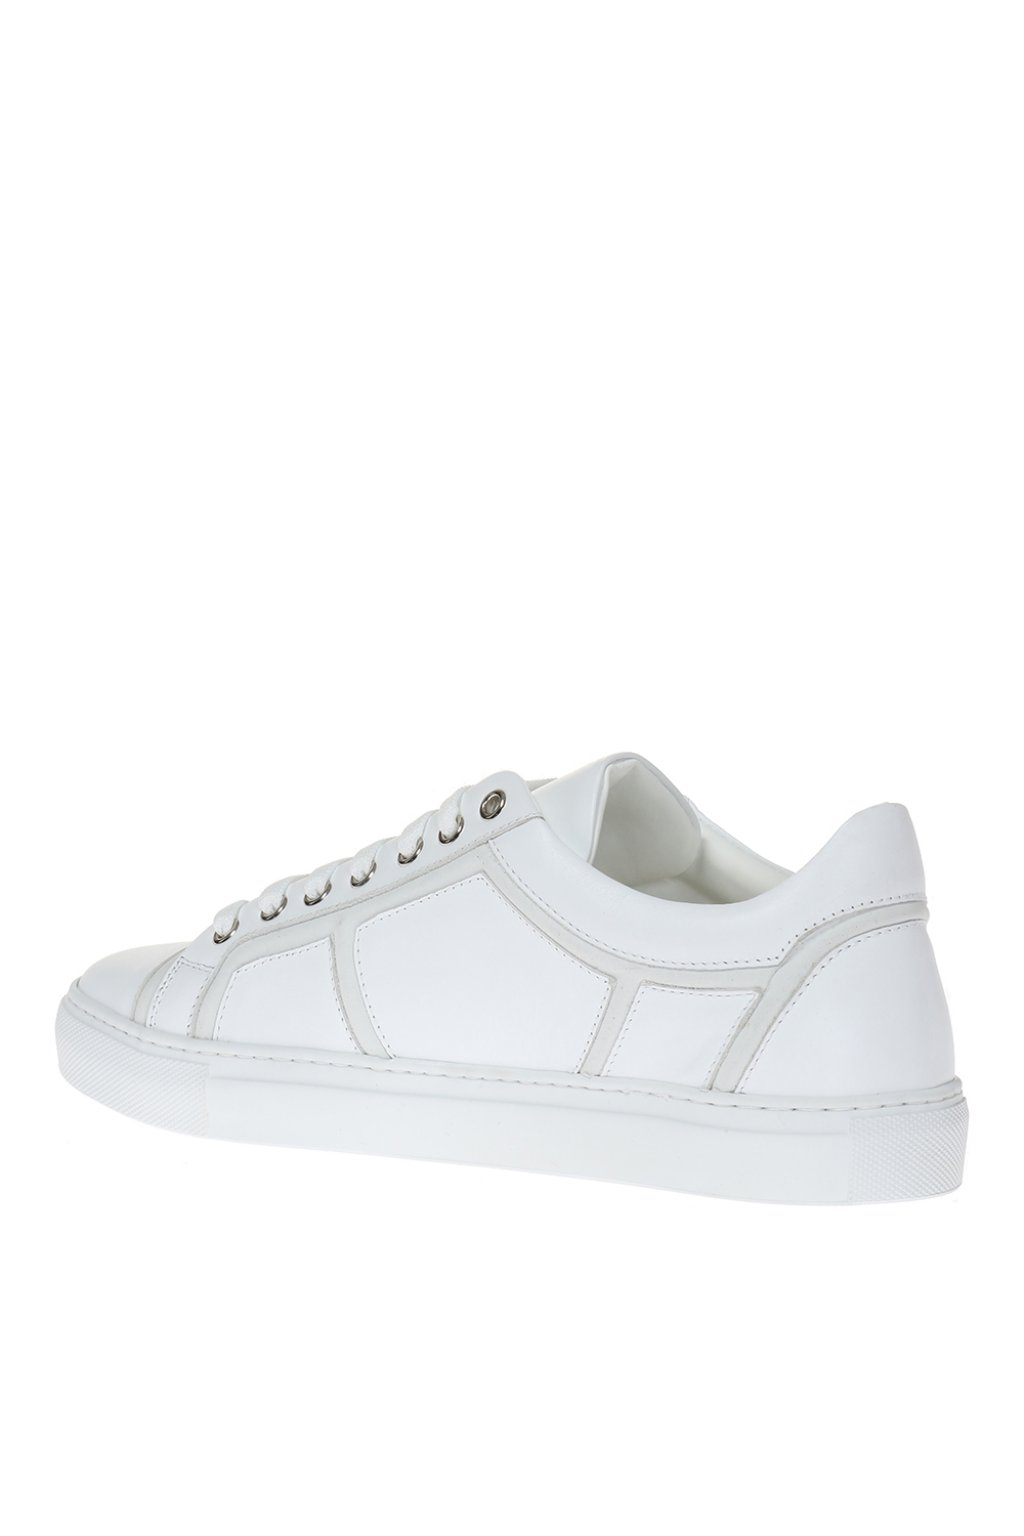 Billionaire 'Humbert' leather sneakers